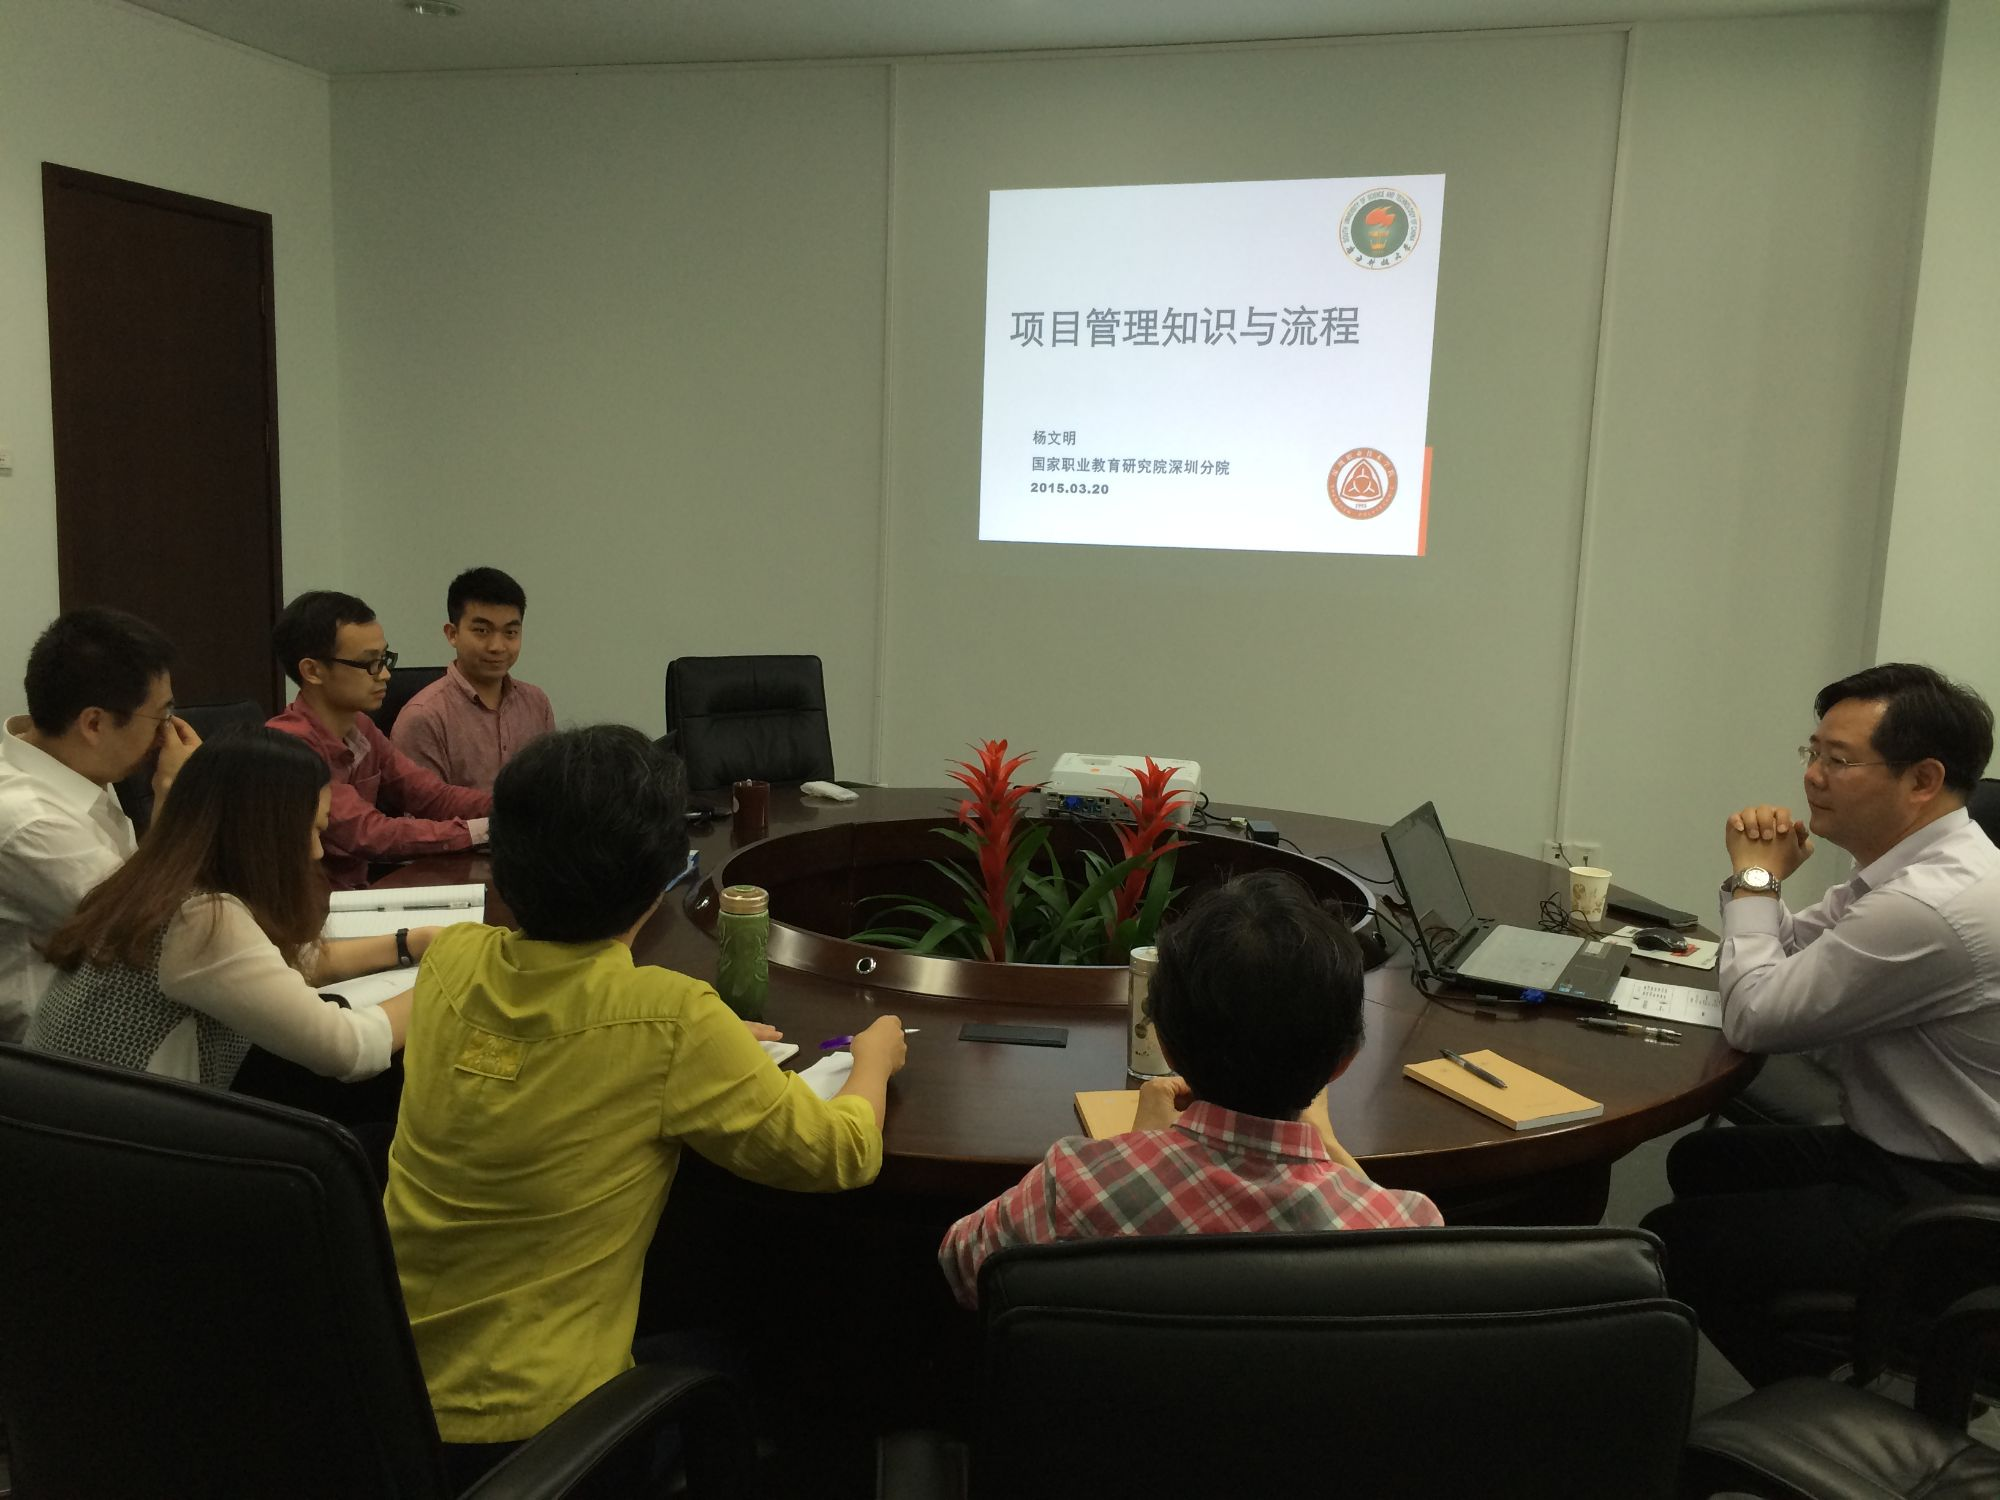 Professor Yang Wenming Was Visited to Conduct Training about Education Project Management